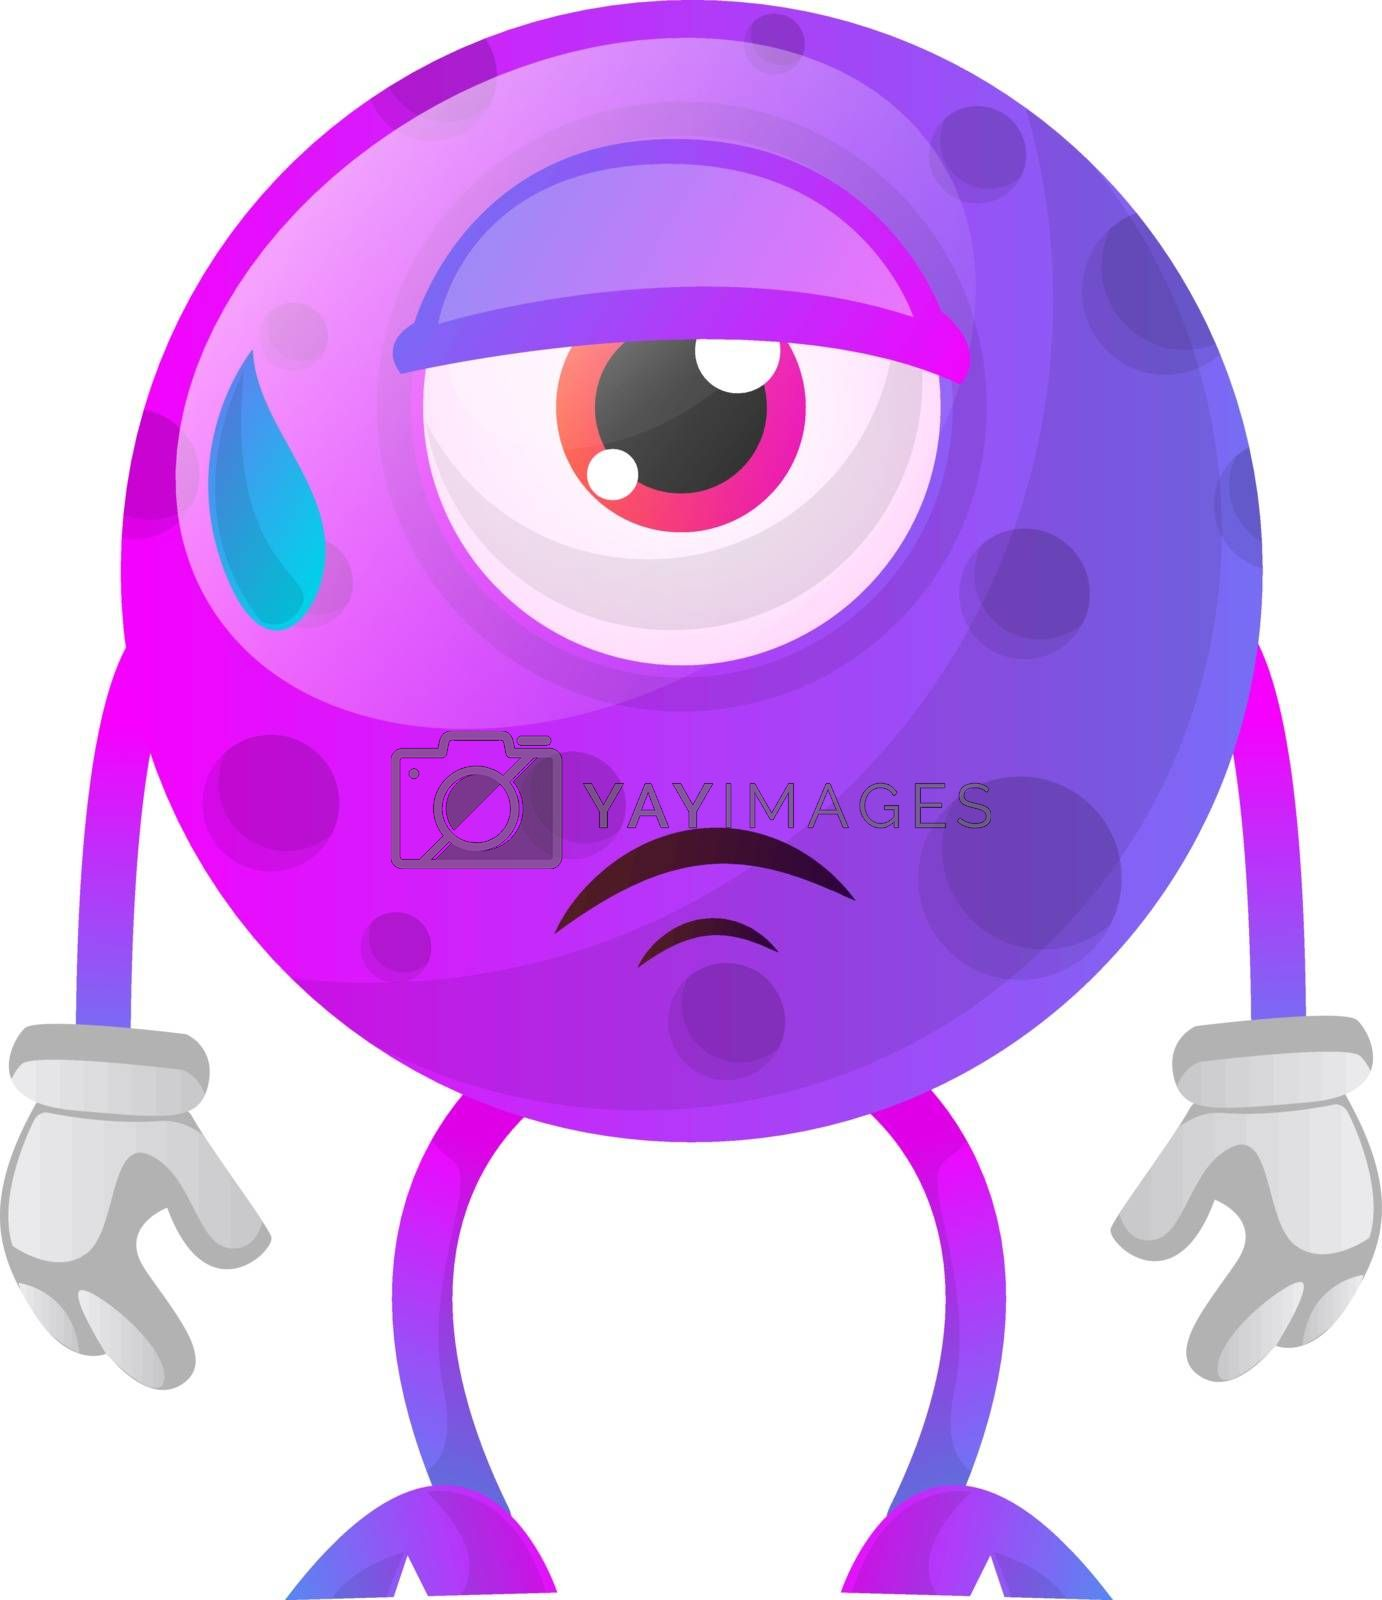 Royalty free image of Tired one eyed monster illustration vector on white background by Morphart